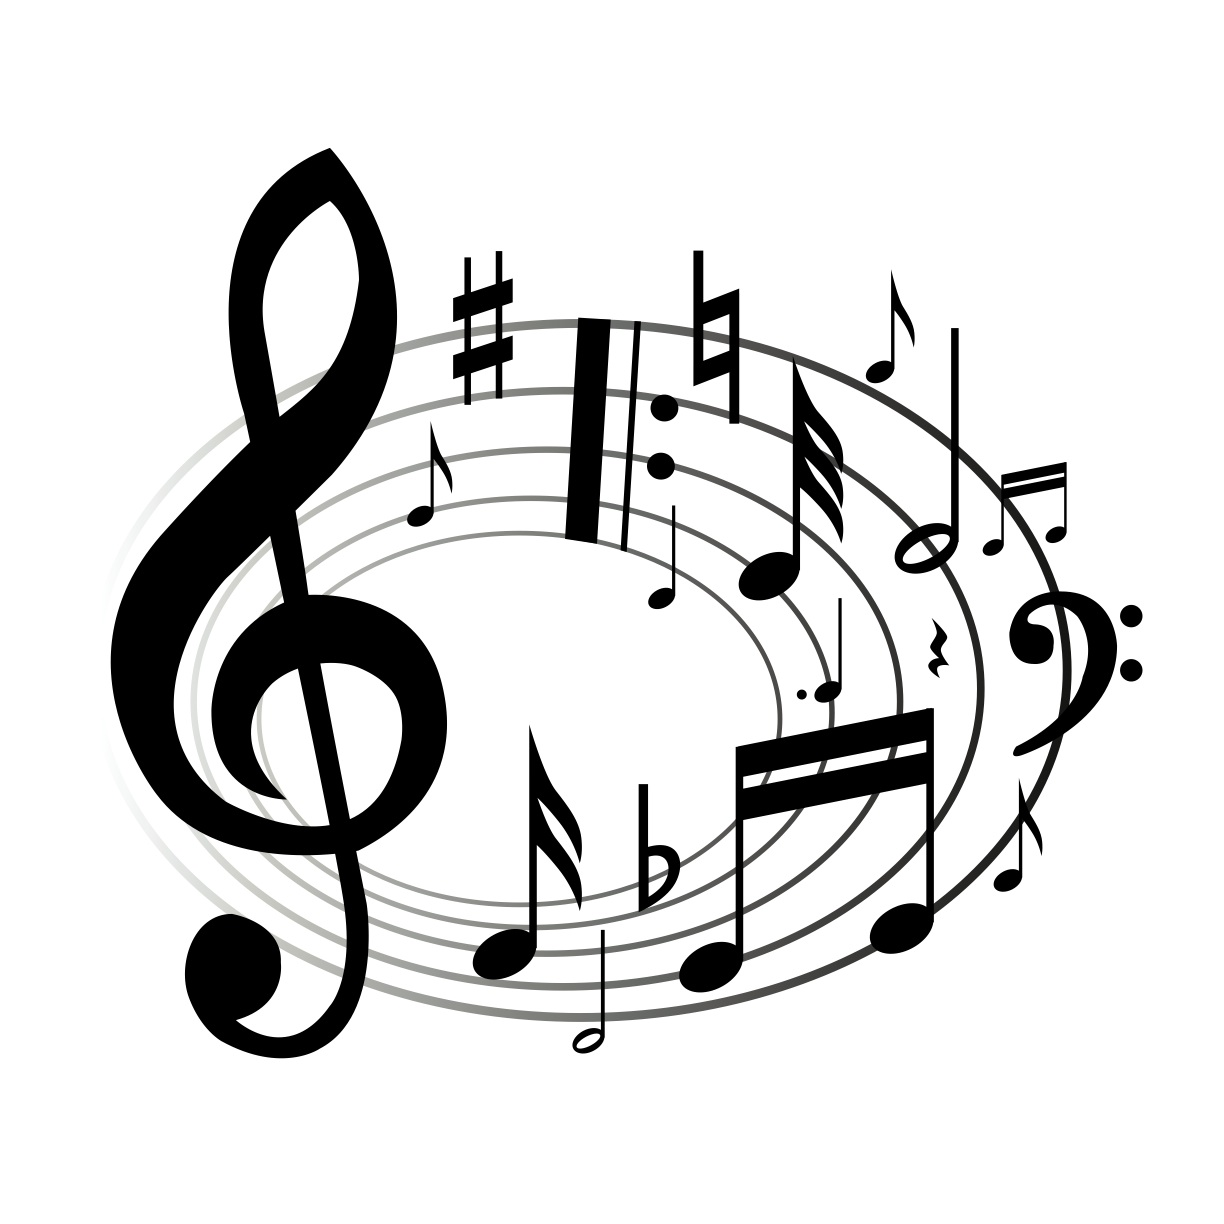 The Pemberley Parlor: The Importance of Music Theory